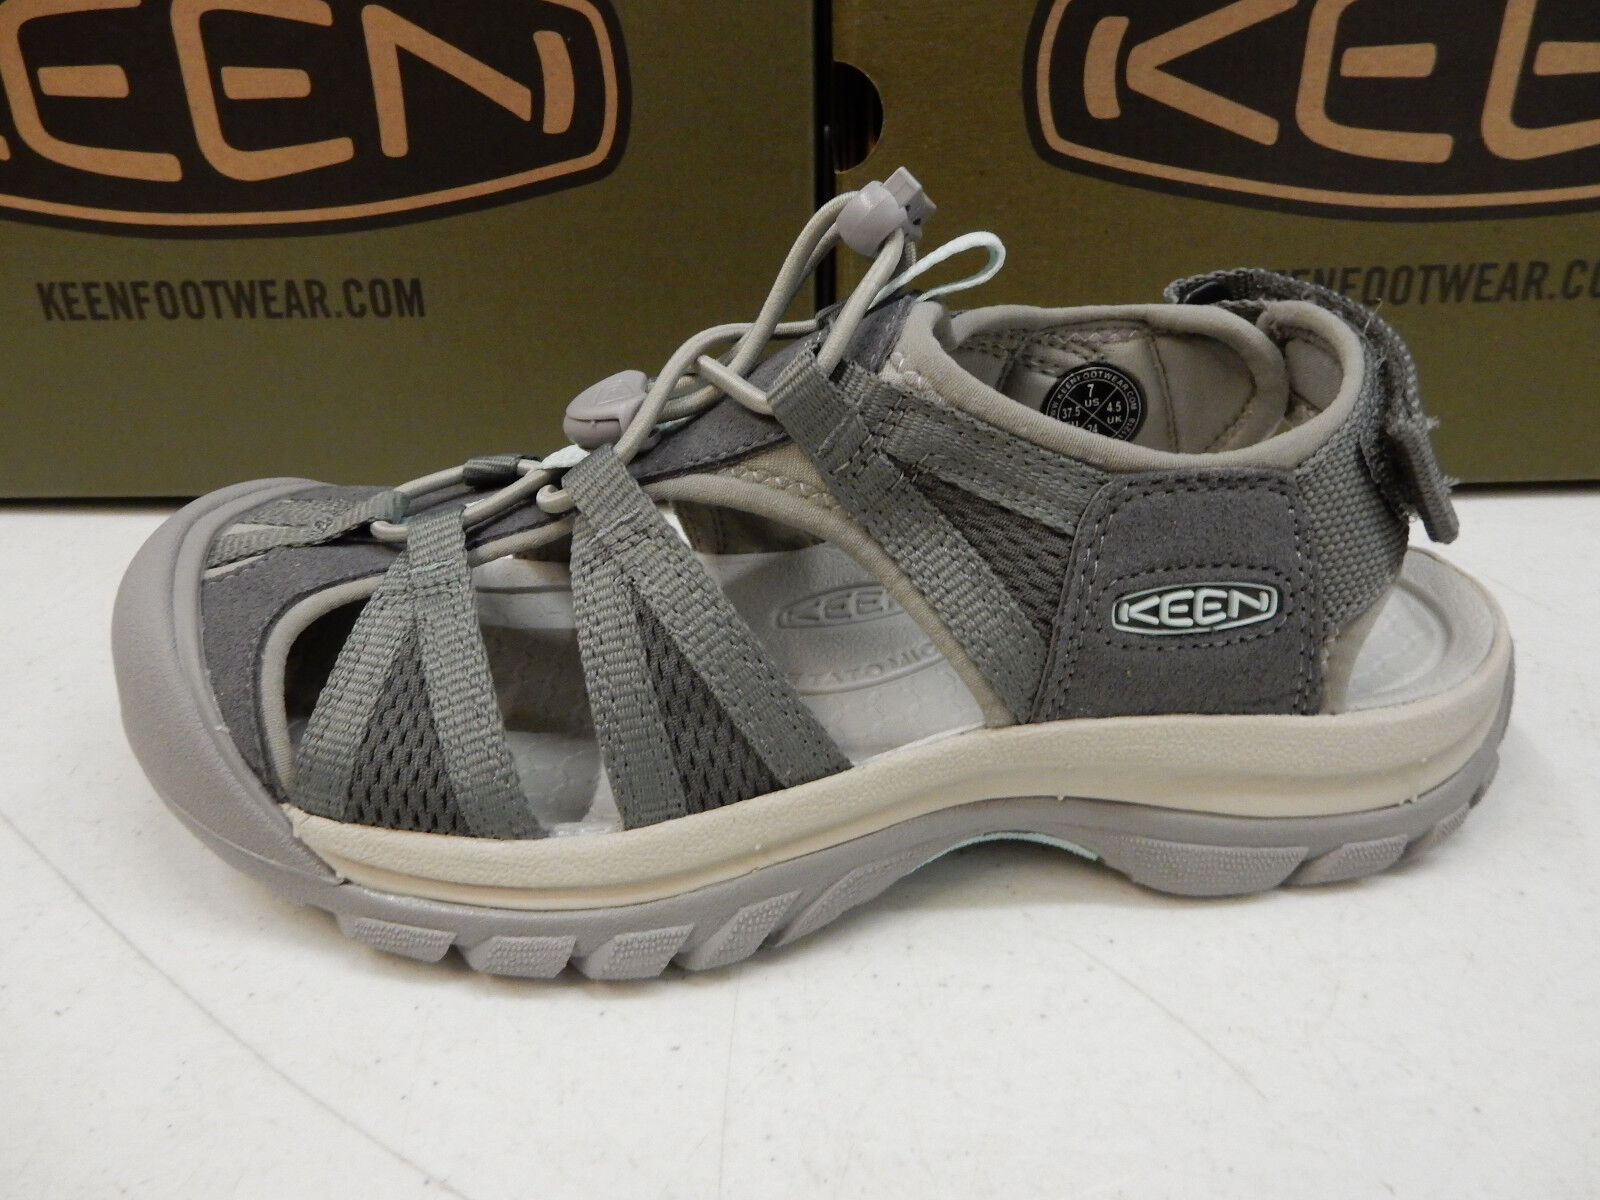 Keen Womens Venice II H2 Castor Grey London Fog Size 7.5